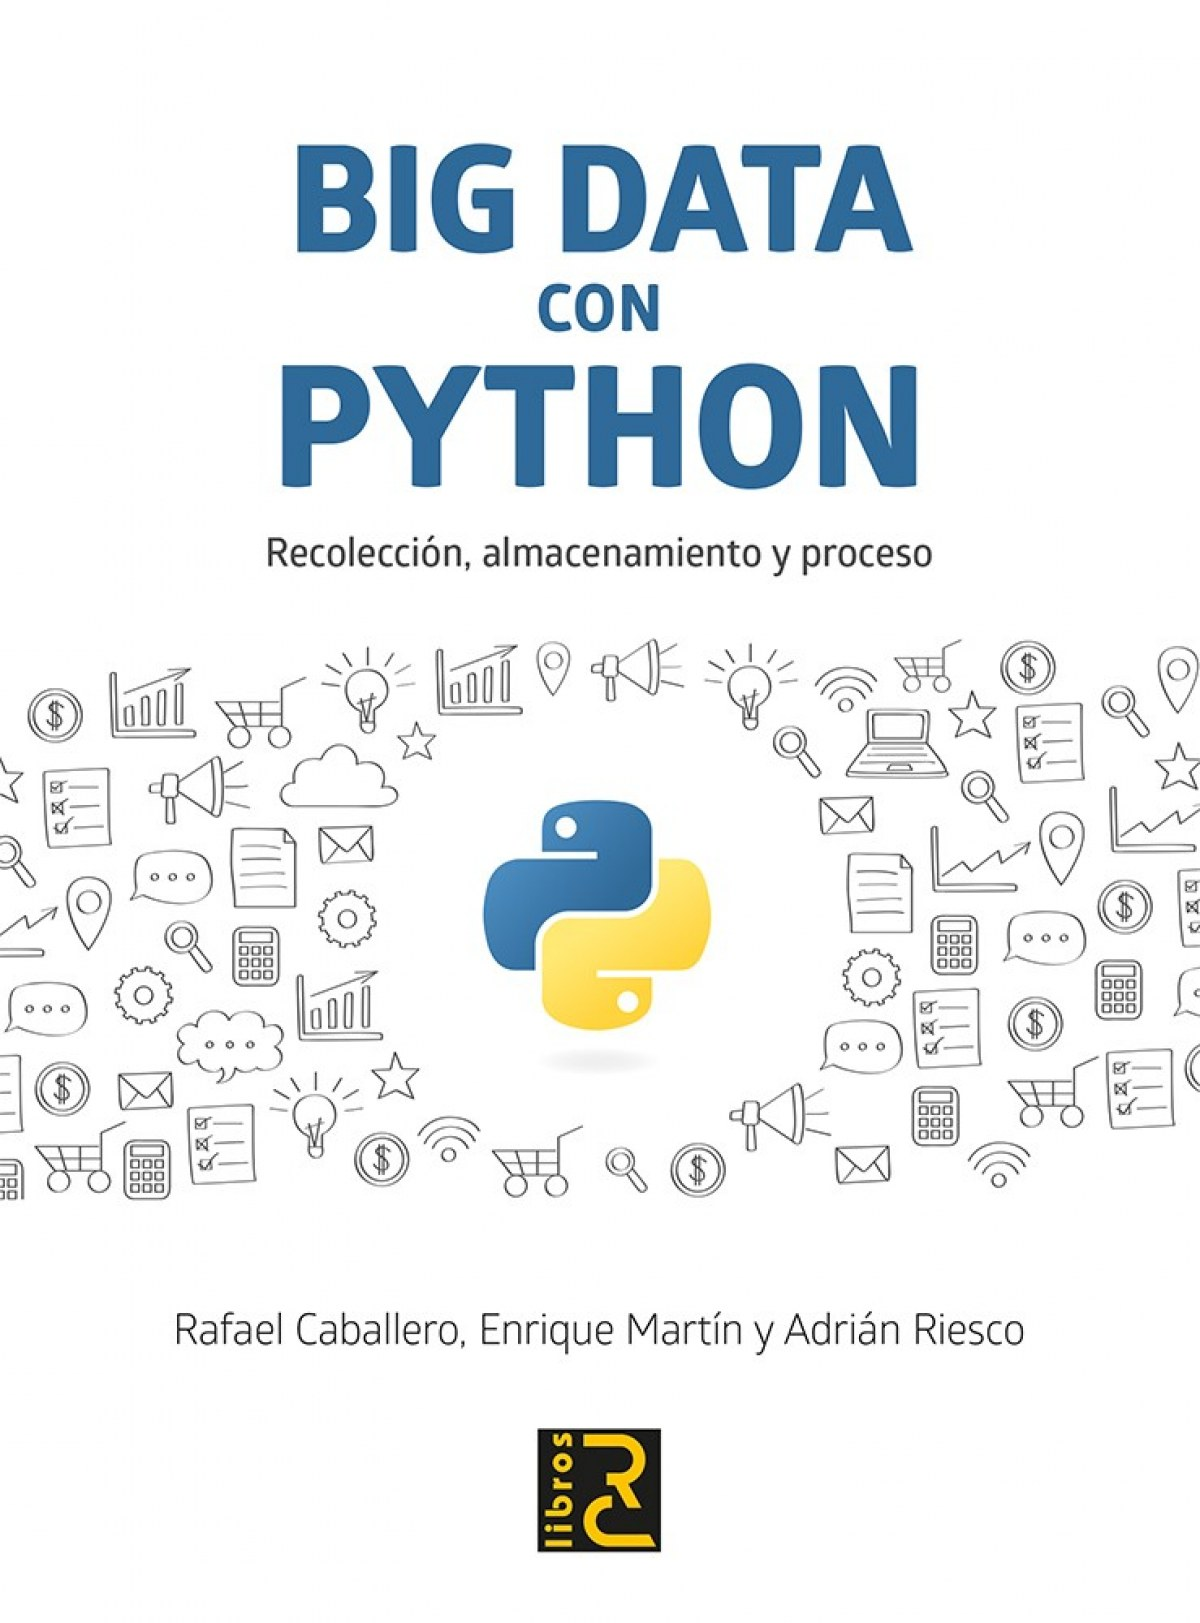 Big data con Python